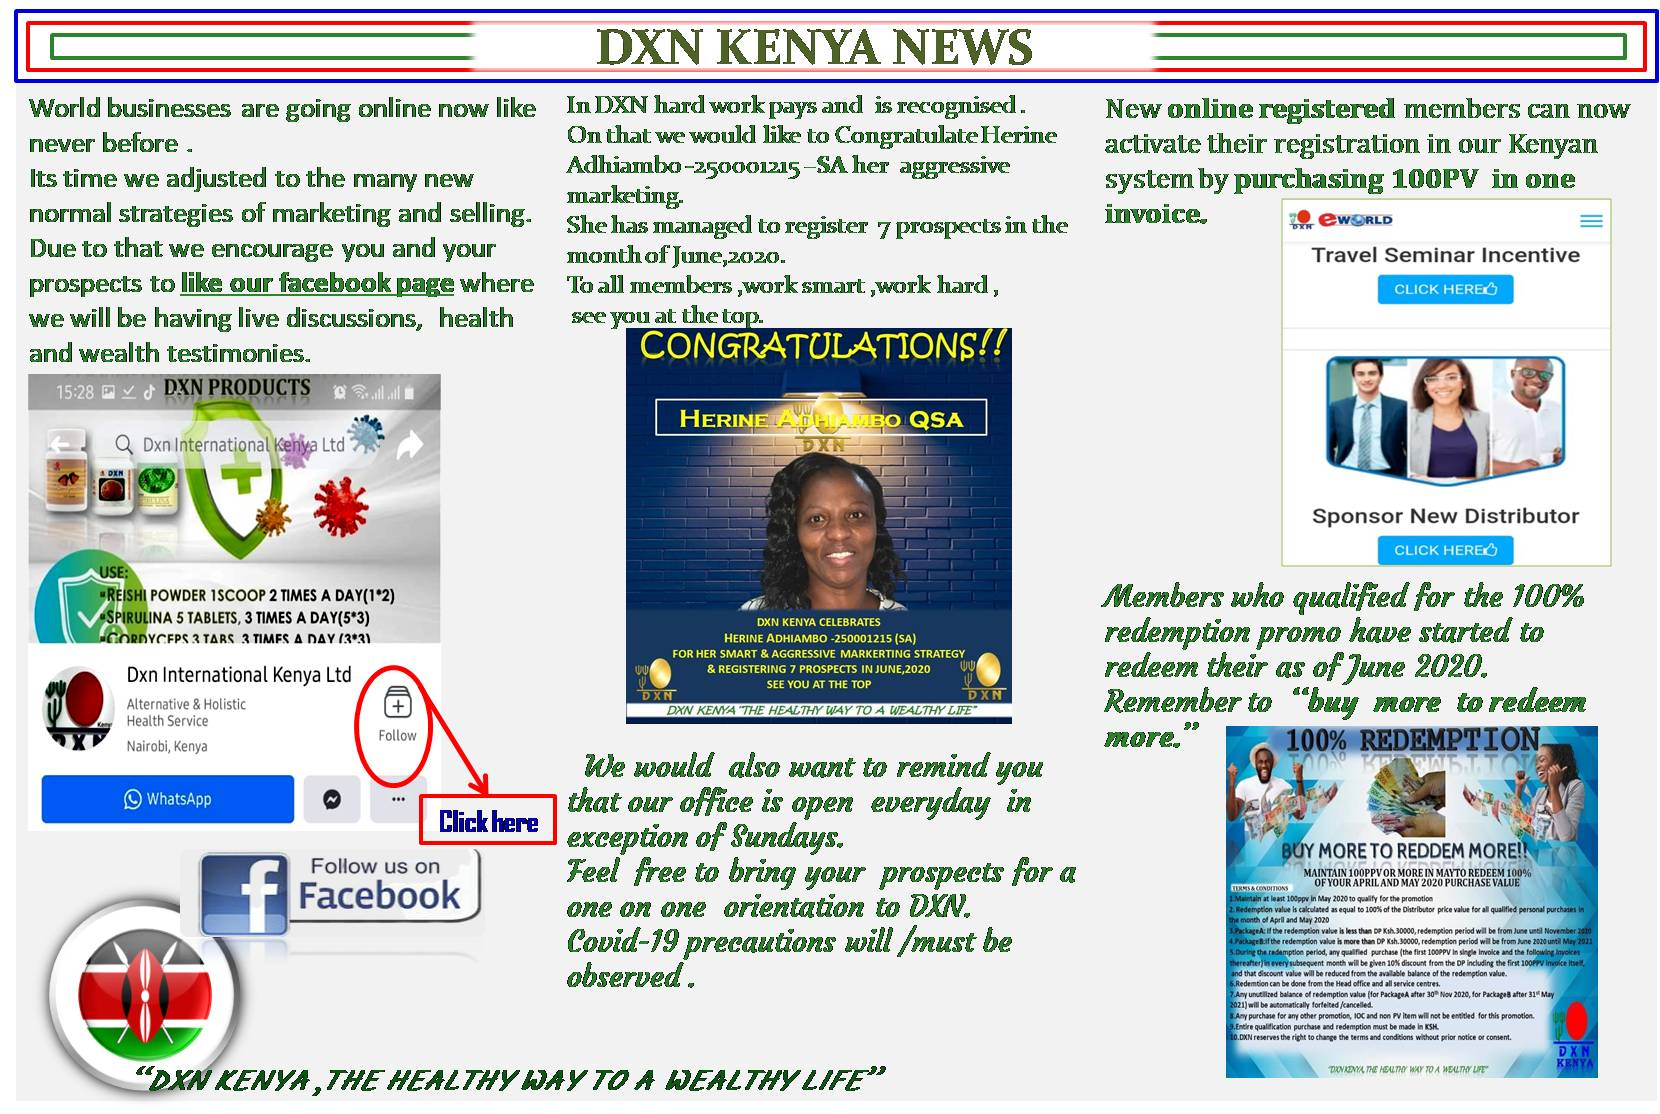 <h4>Kenya News Letter</h4><p><p>See the news letter below</p> </p>